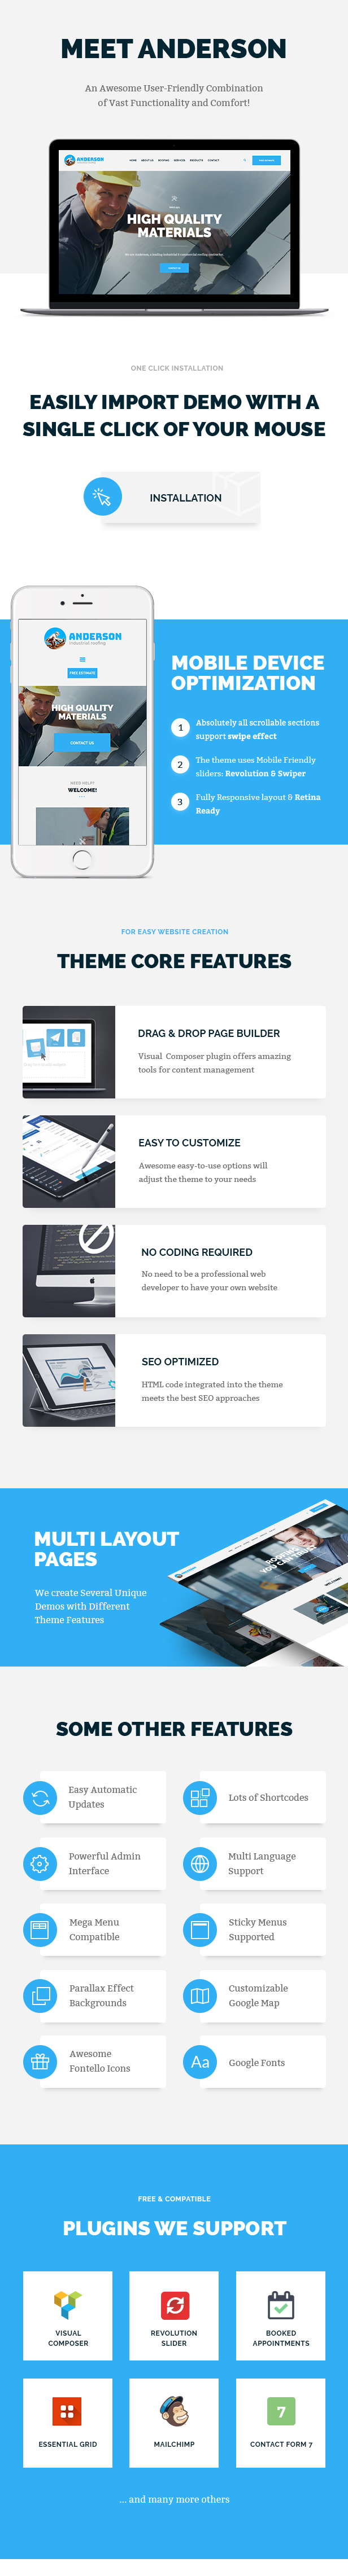 Anderson | Industrial Roofing Services WordPress Theme - 1